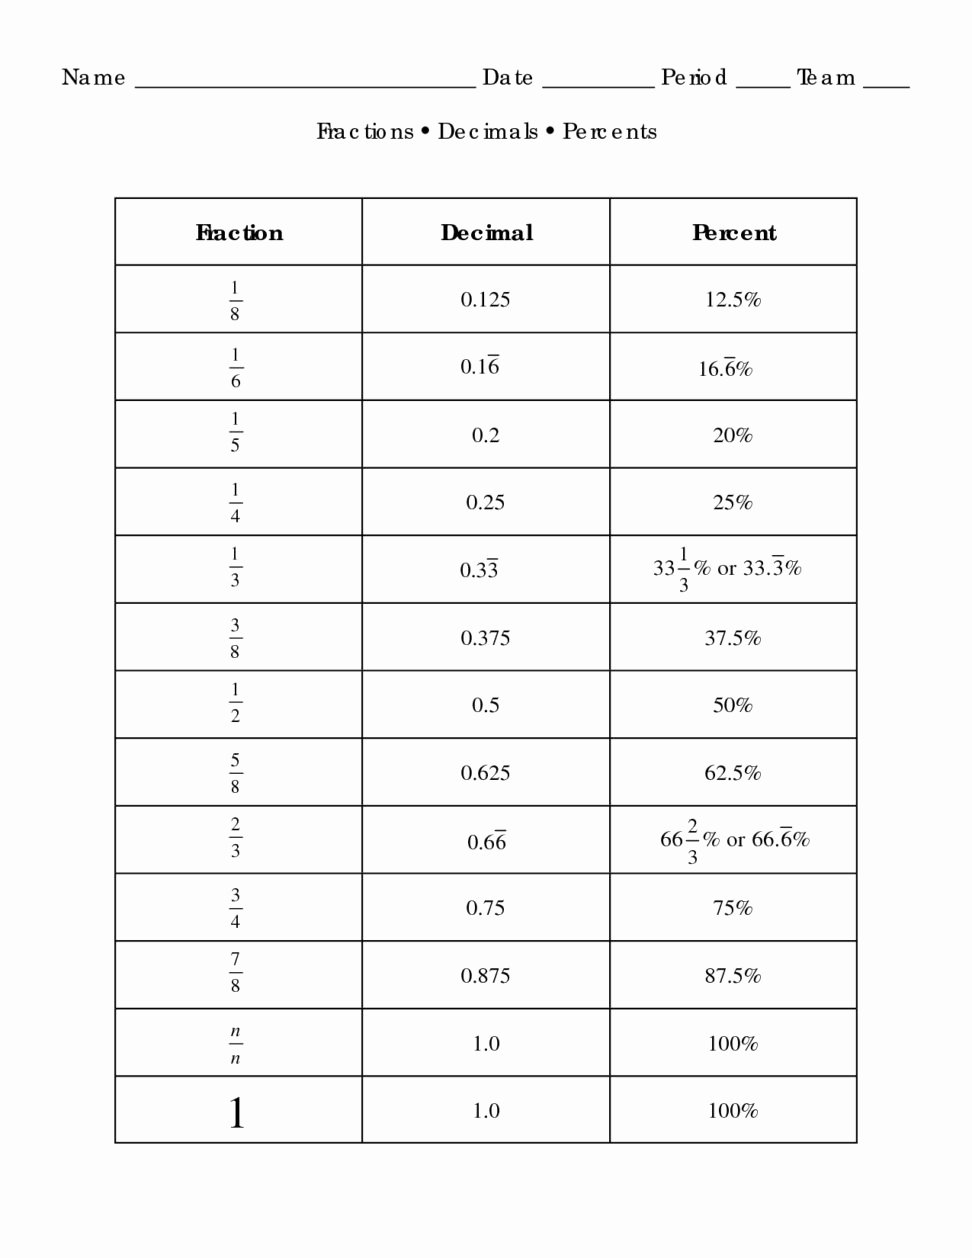 Fraction Decimal Percent Worksheet Pdf Beautiful Converting Terminating Decimals to Fractions A Fraction